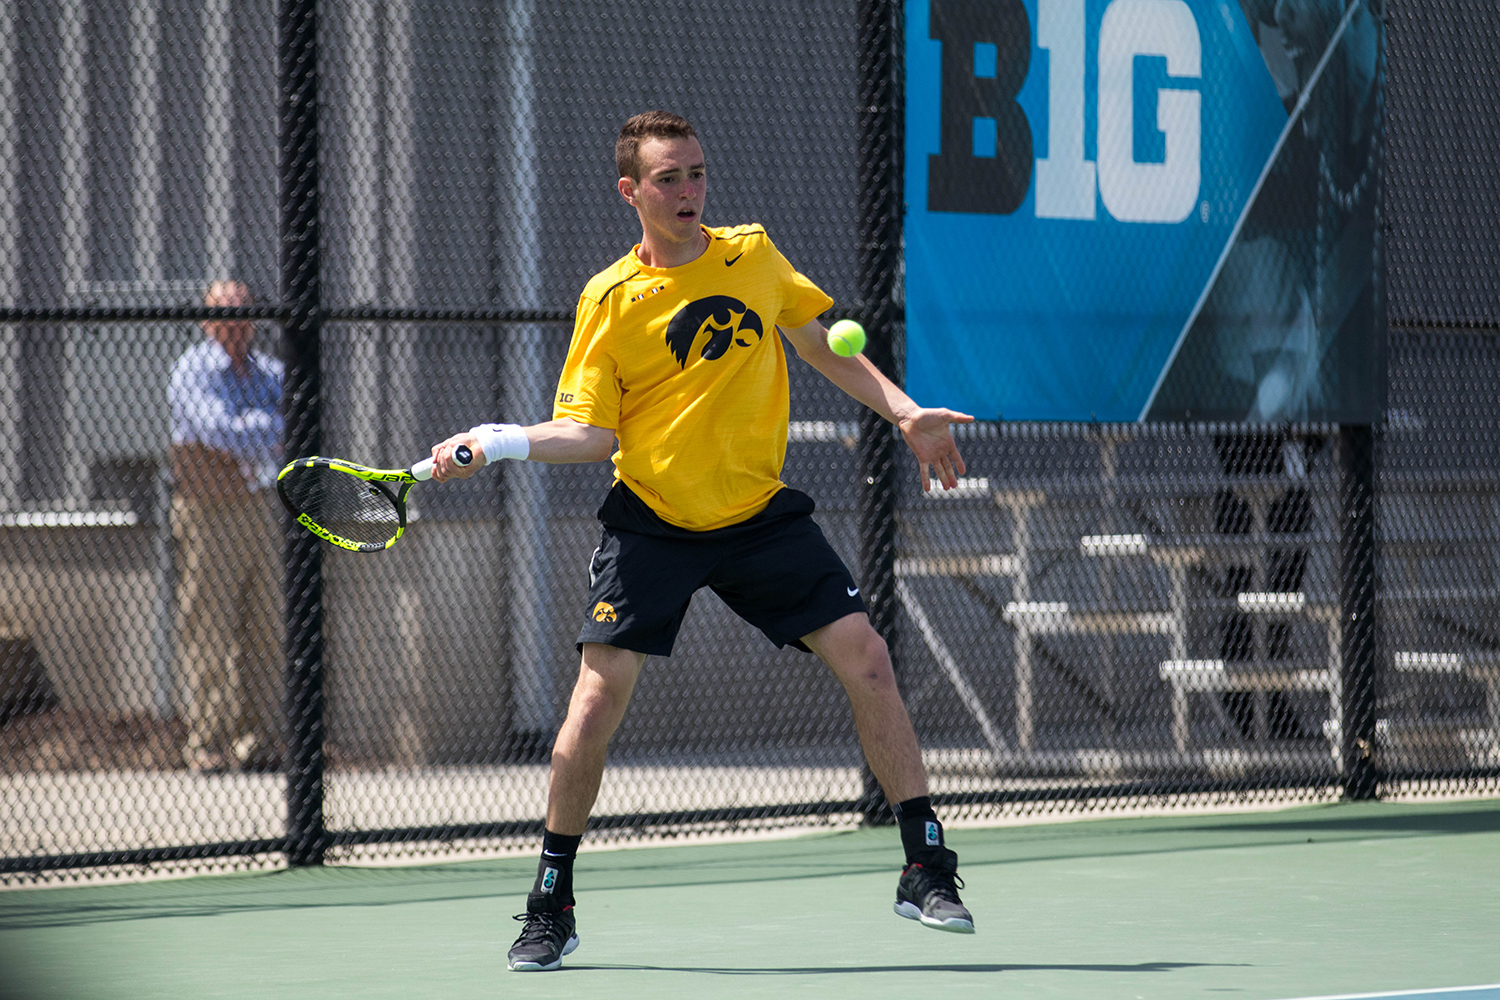 Kareem Allaf hits a forehand during the first round of the Men's Big Ten Tennis Tournament at the HTRC on April 26, 2018.